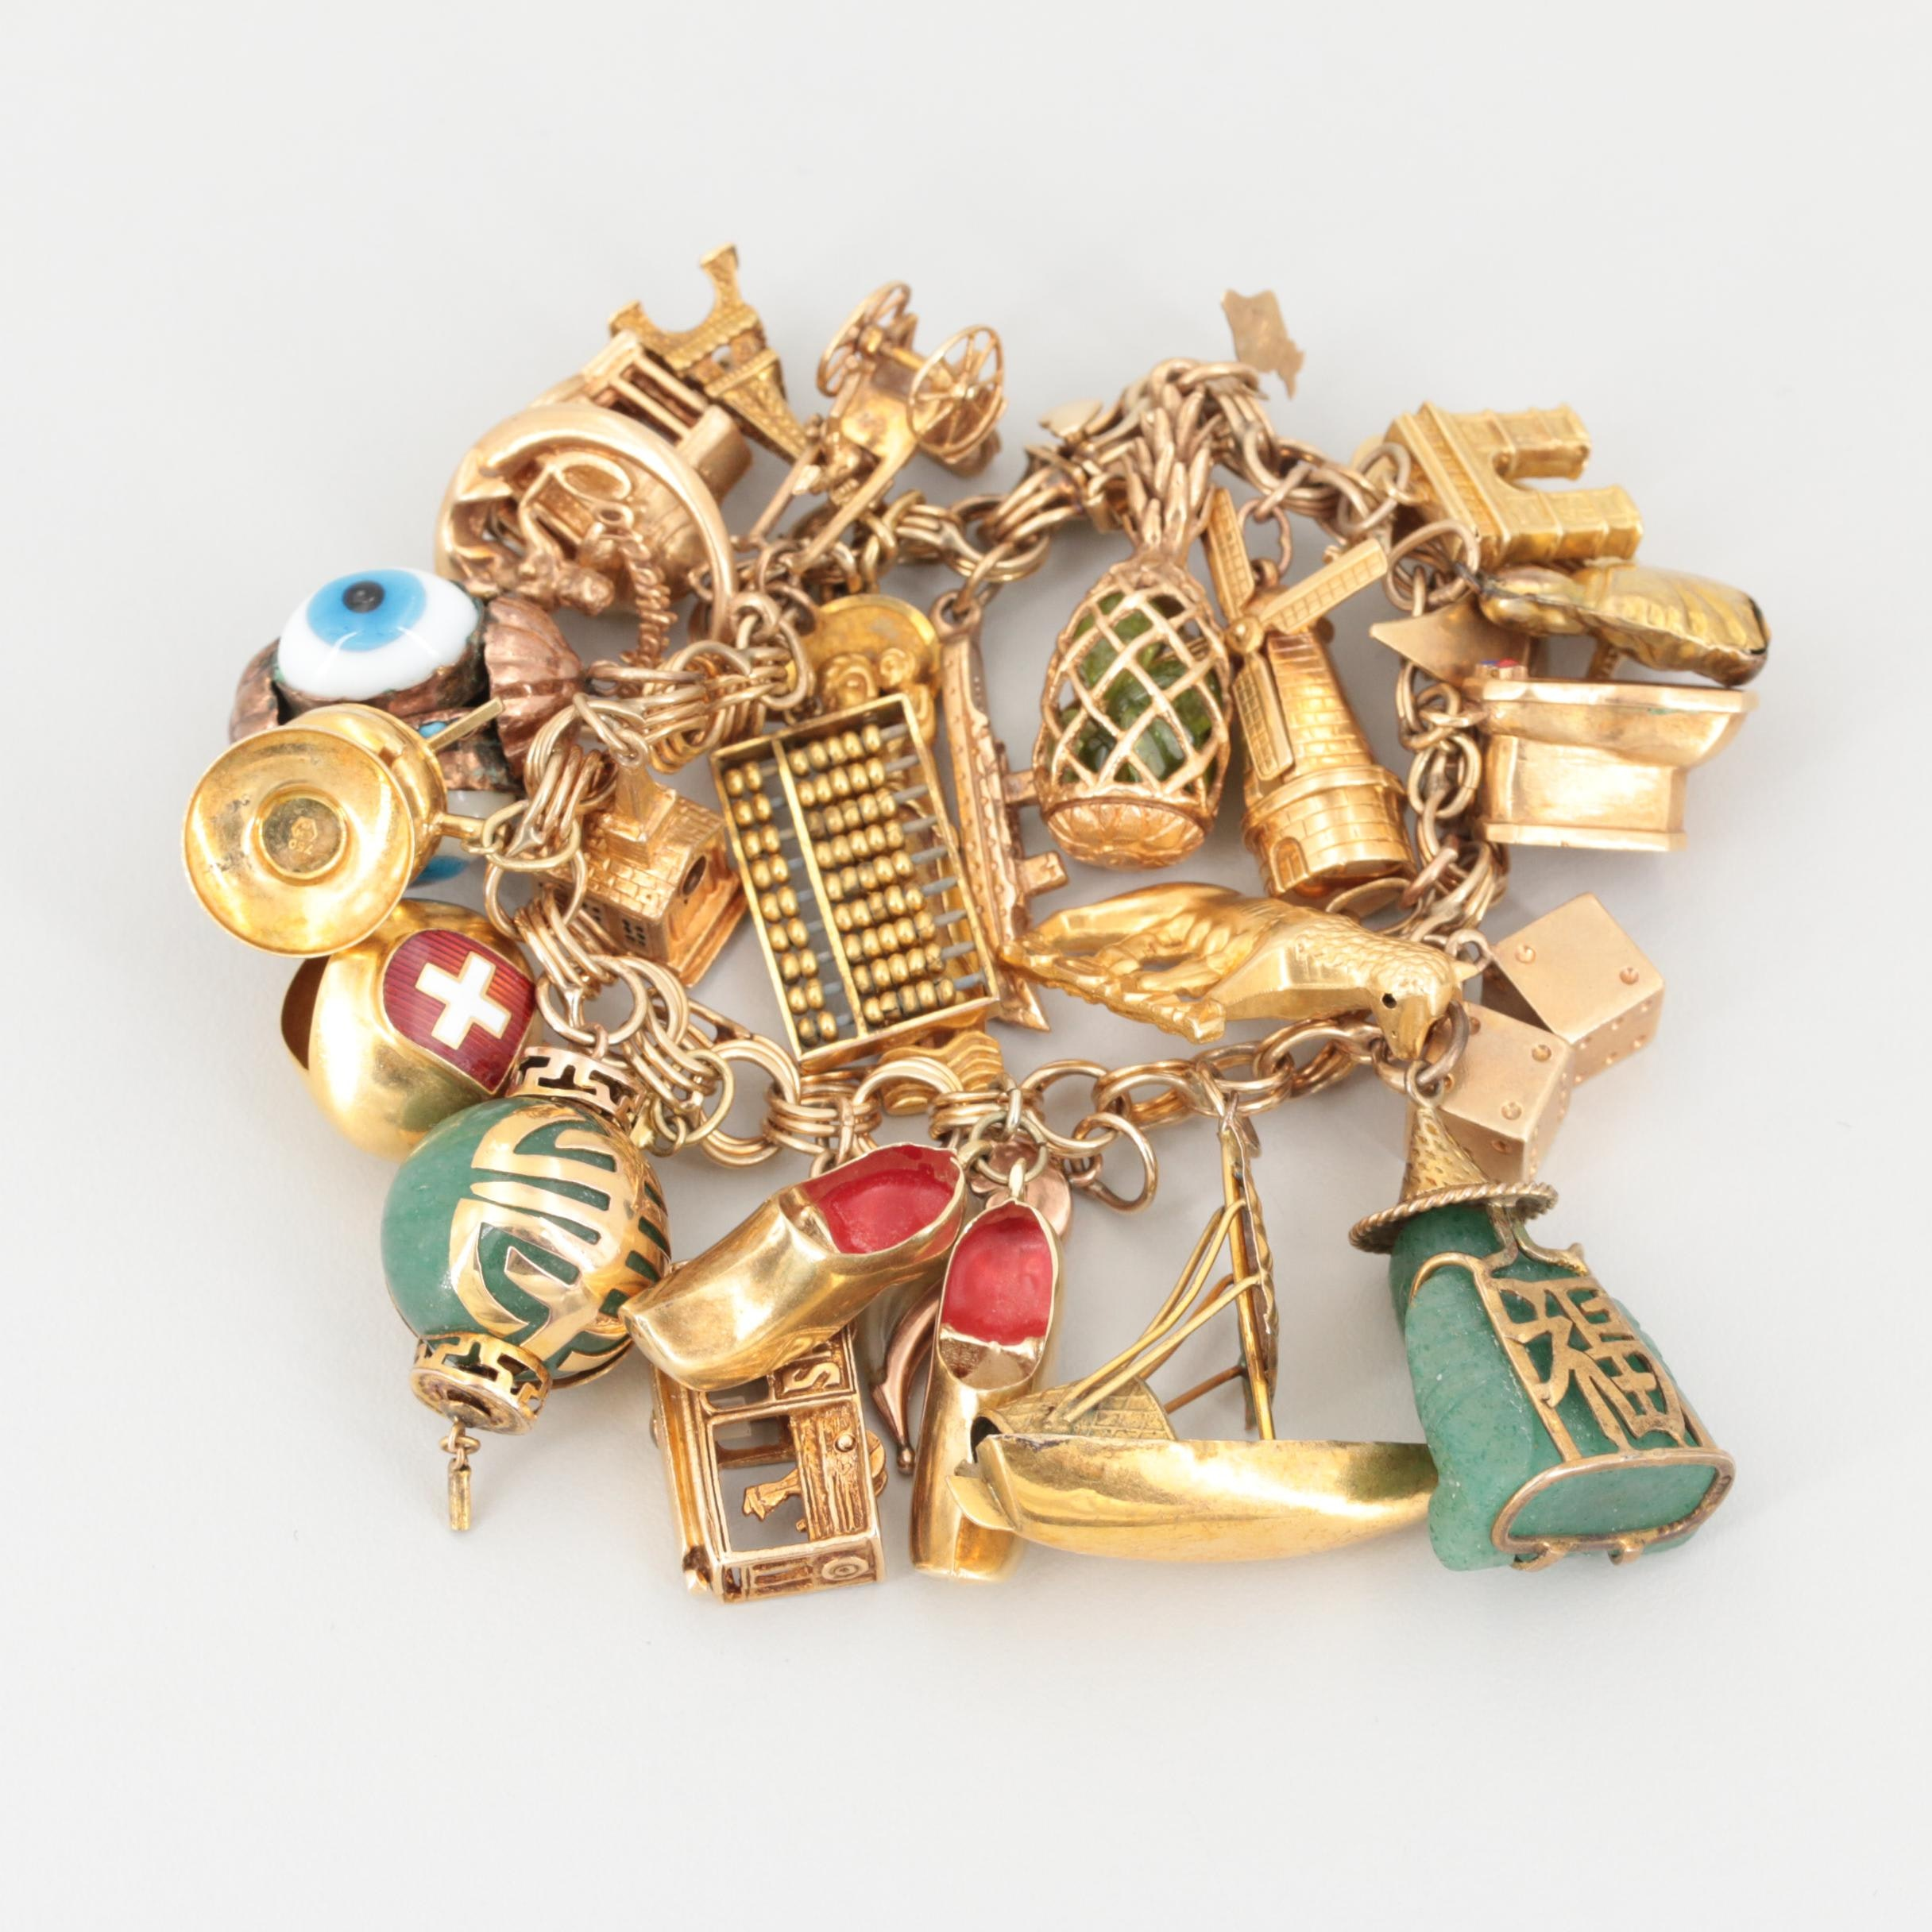 14K Yellow Gold Glass and Enamel Bracelet with 18K, 14K, and Gold Wash Charms